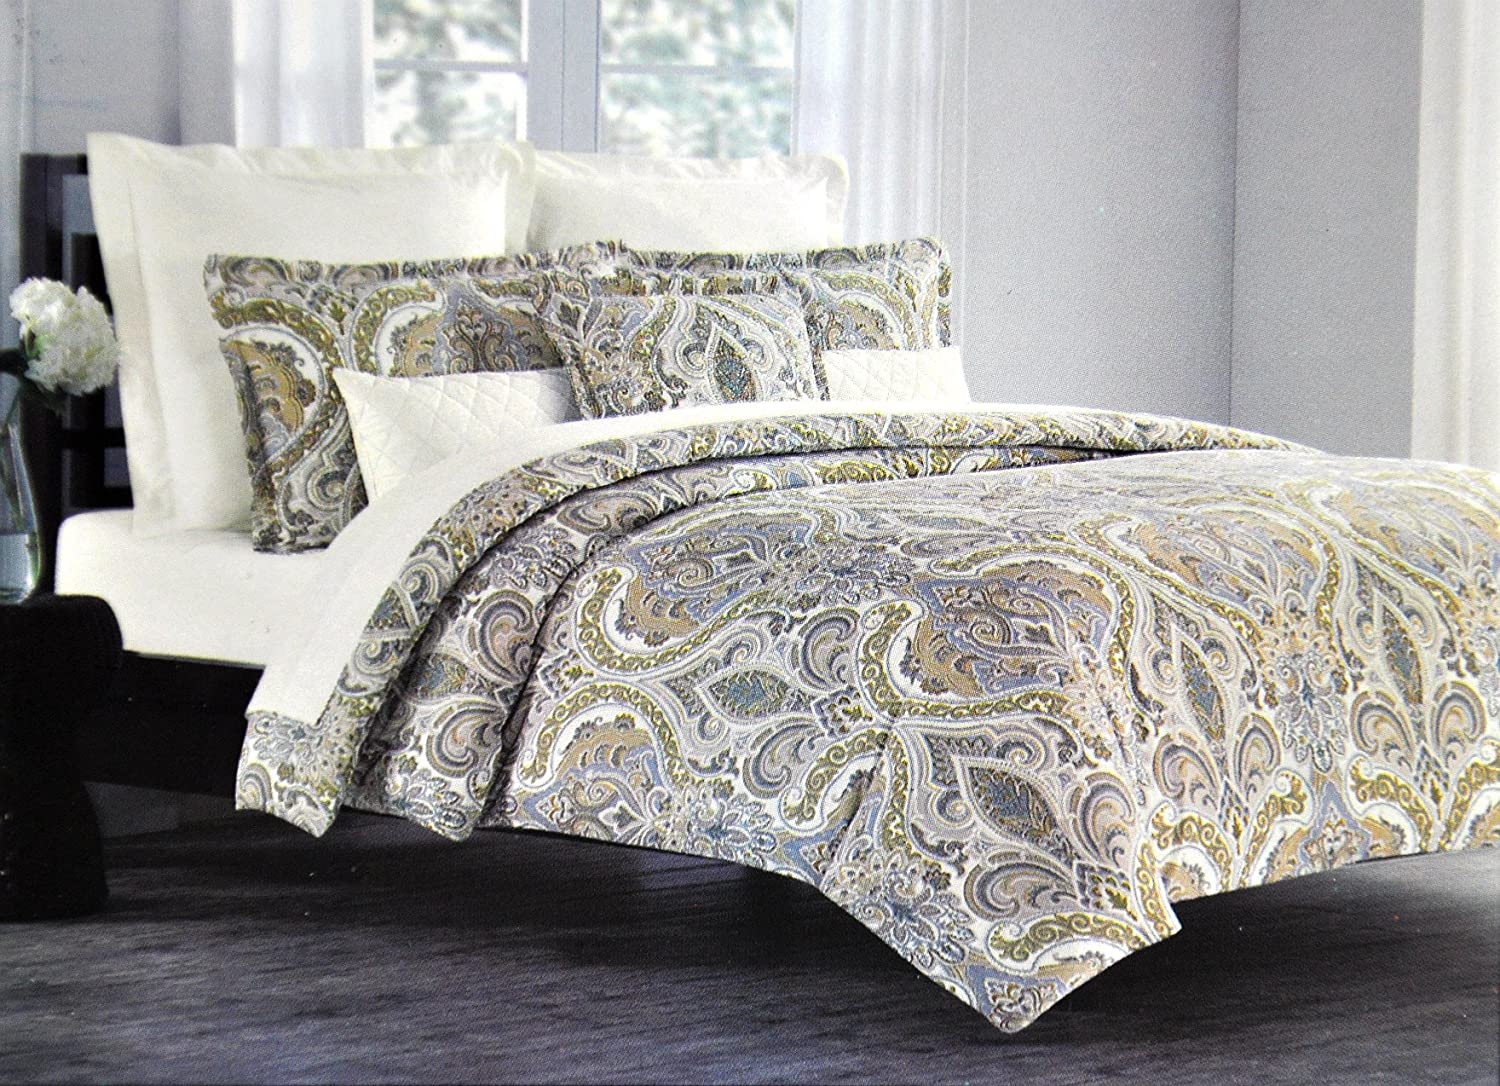 Tahari Home 3pc Duvet Cover Set Paisley Medallion Mustard Yellow Grey Beige White Luxury Cotton Sateen Full/Queen